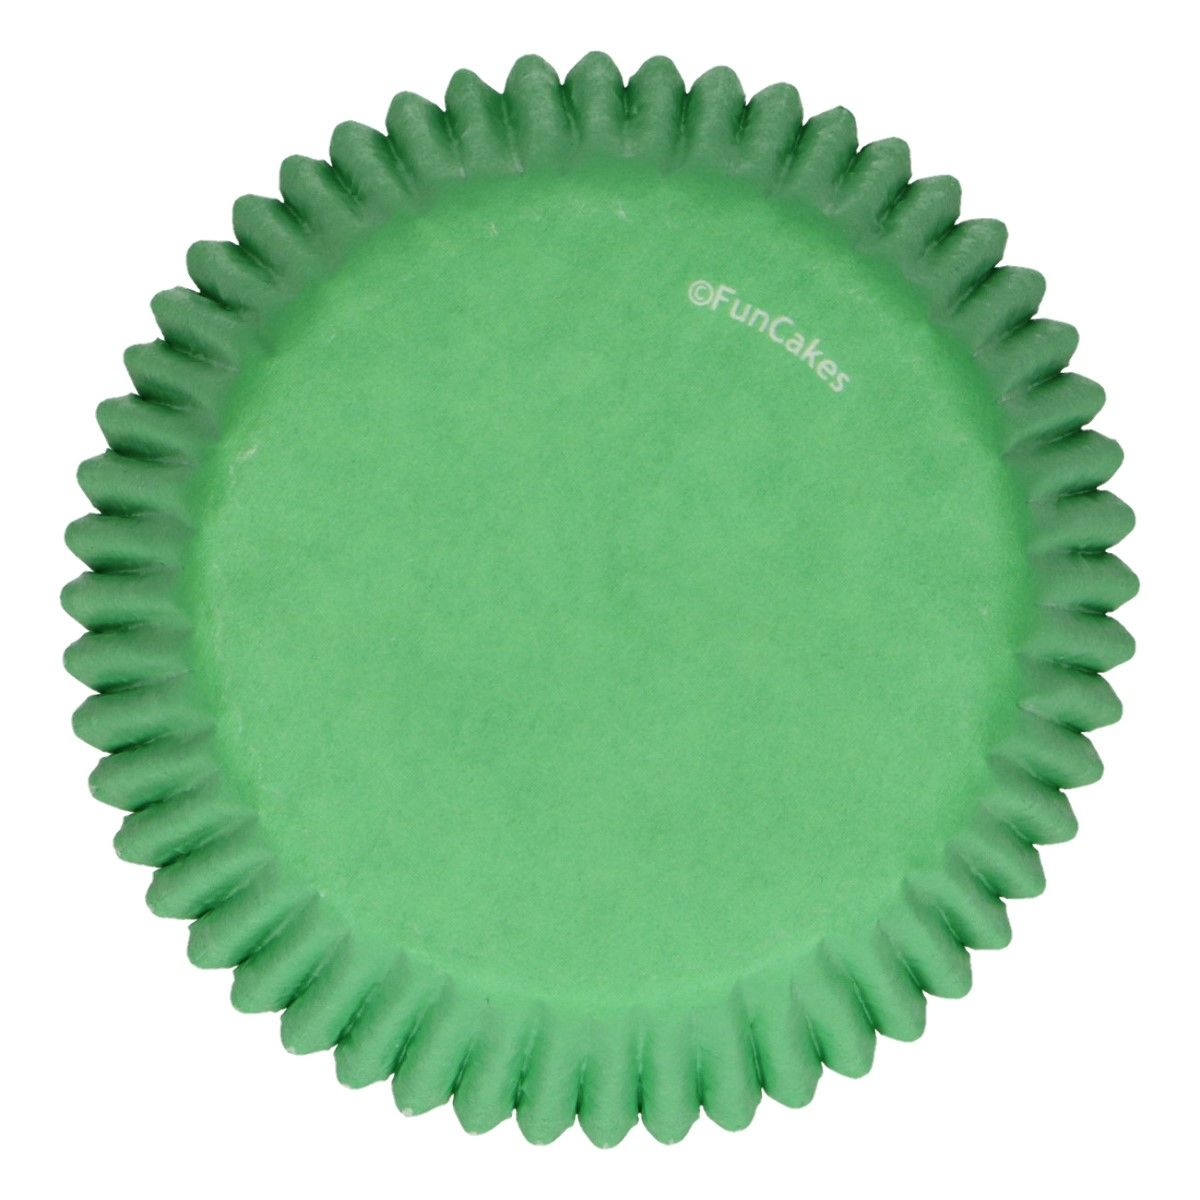 FunCakes Baking Cups -Grass Green- pk/48